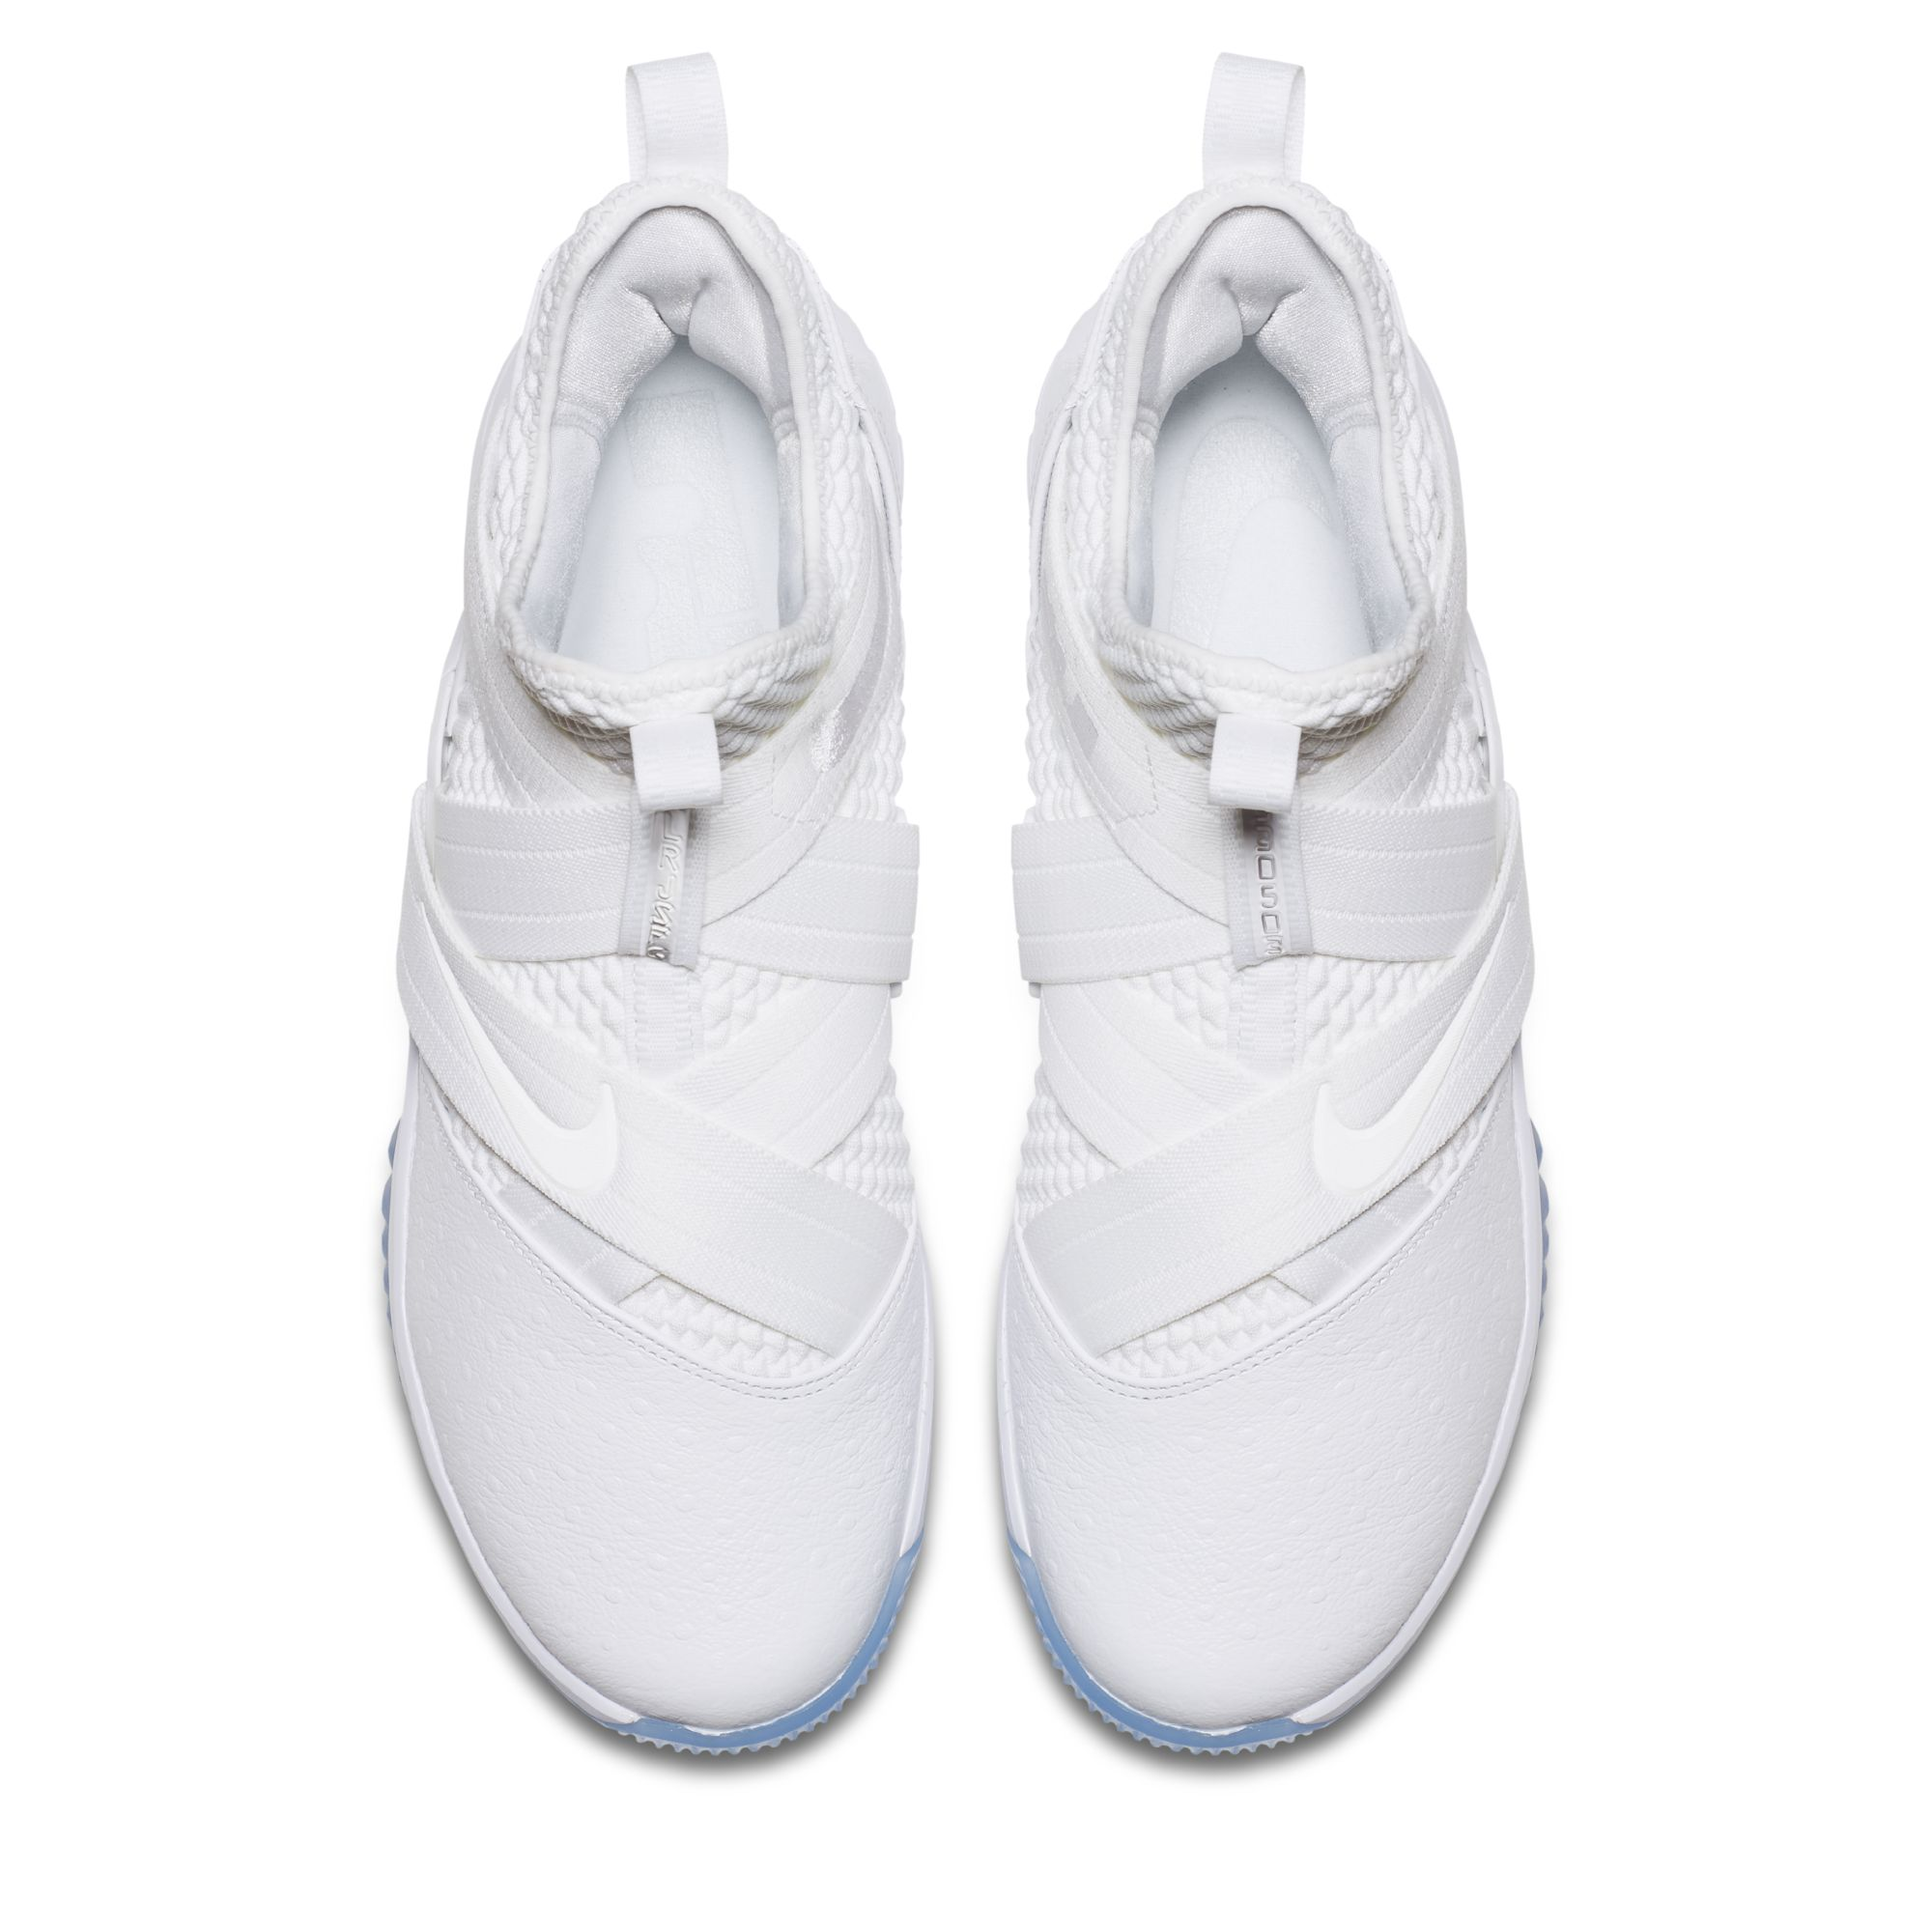 newest 9e071 77a8d The Nike LeBron Soldier 12 'Triple White' Releases Next ...